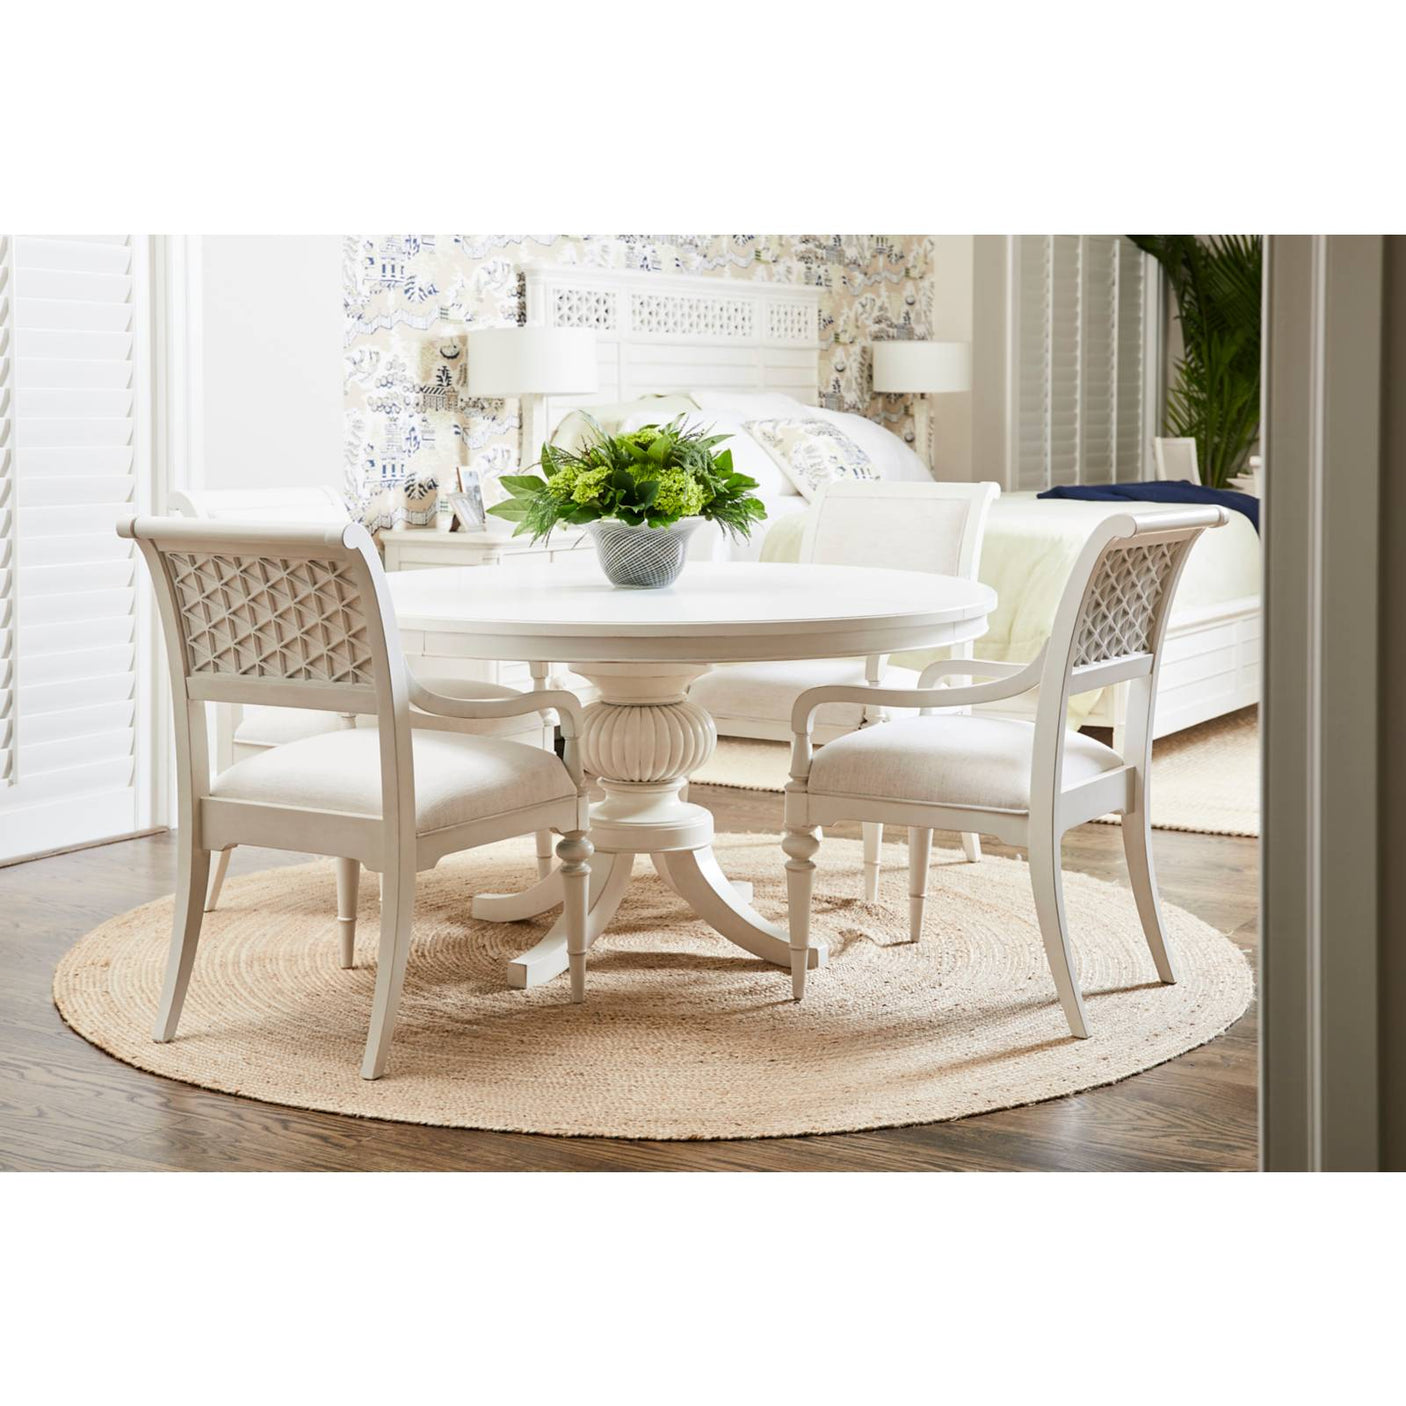 Cypress Grove 54 Round Dining Table